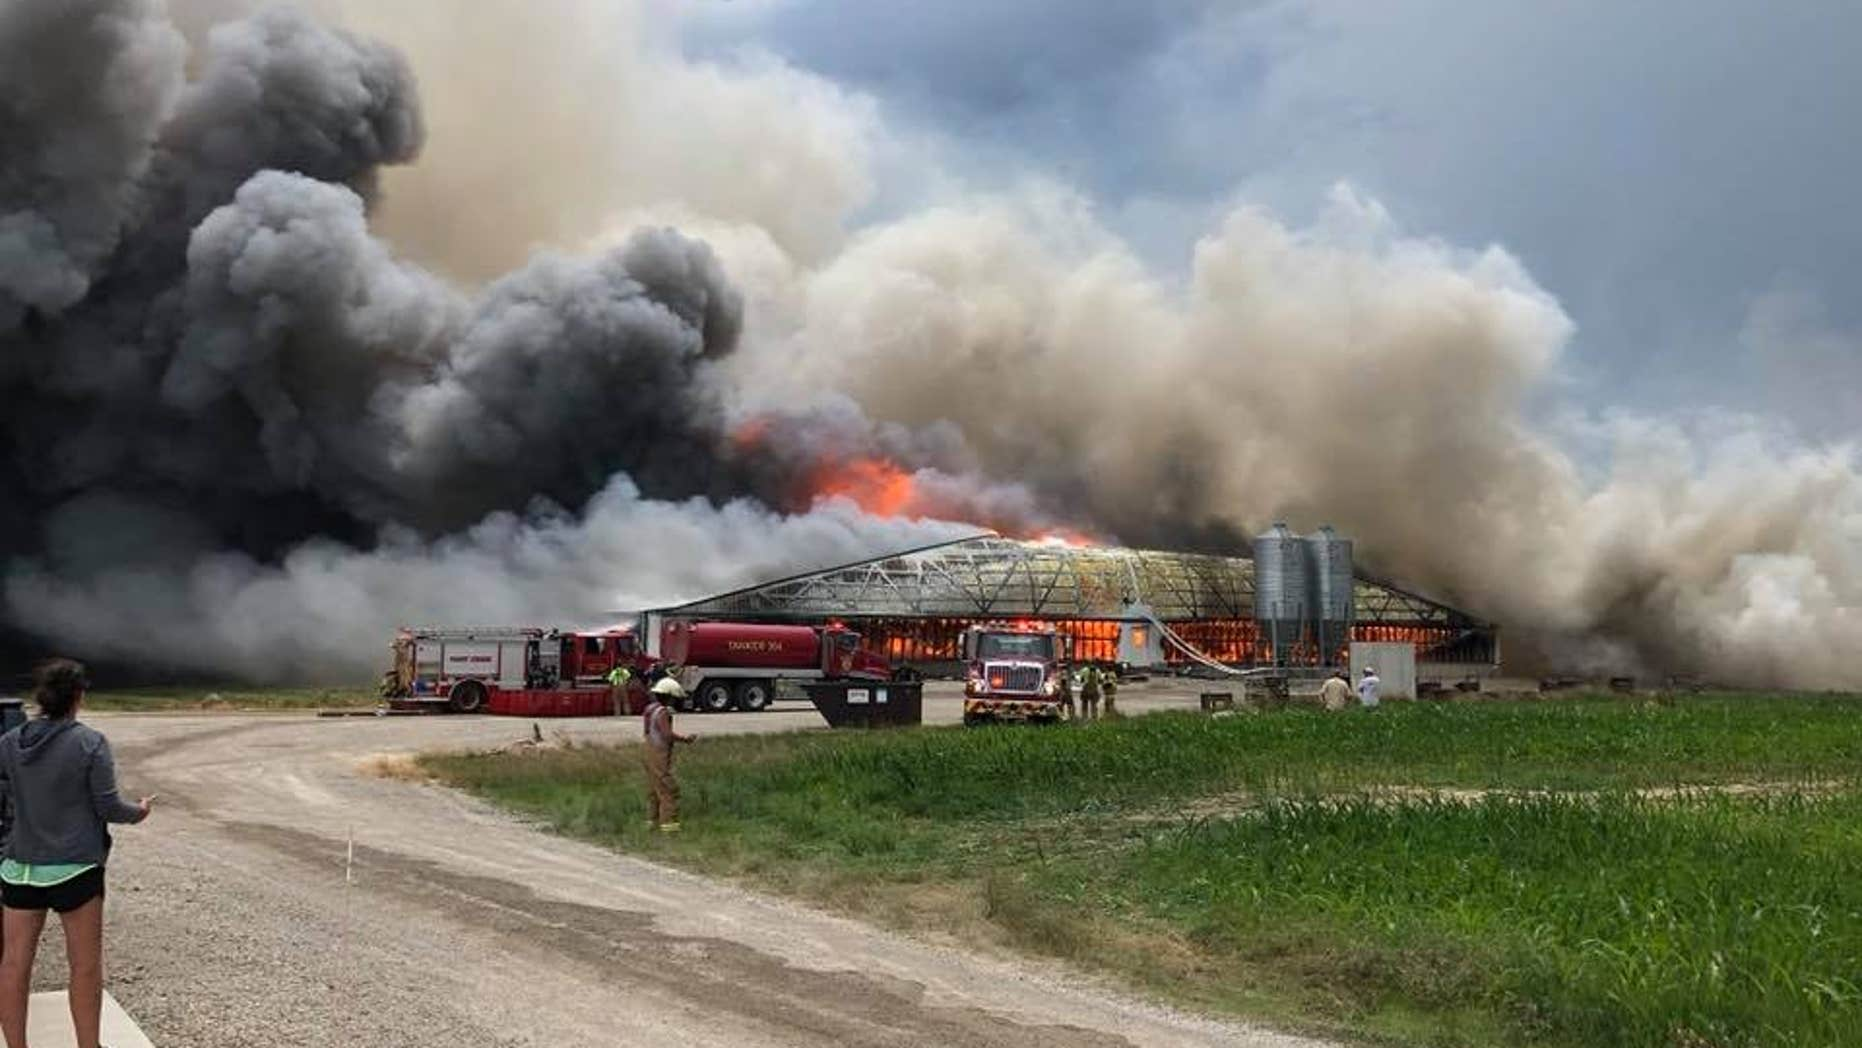 The fire completely destroyed the facility, officials said.